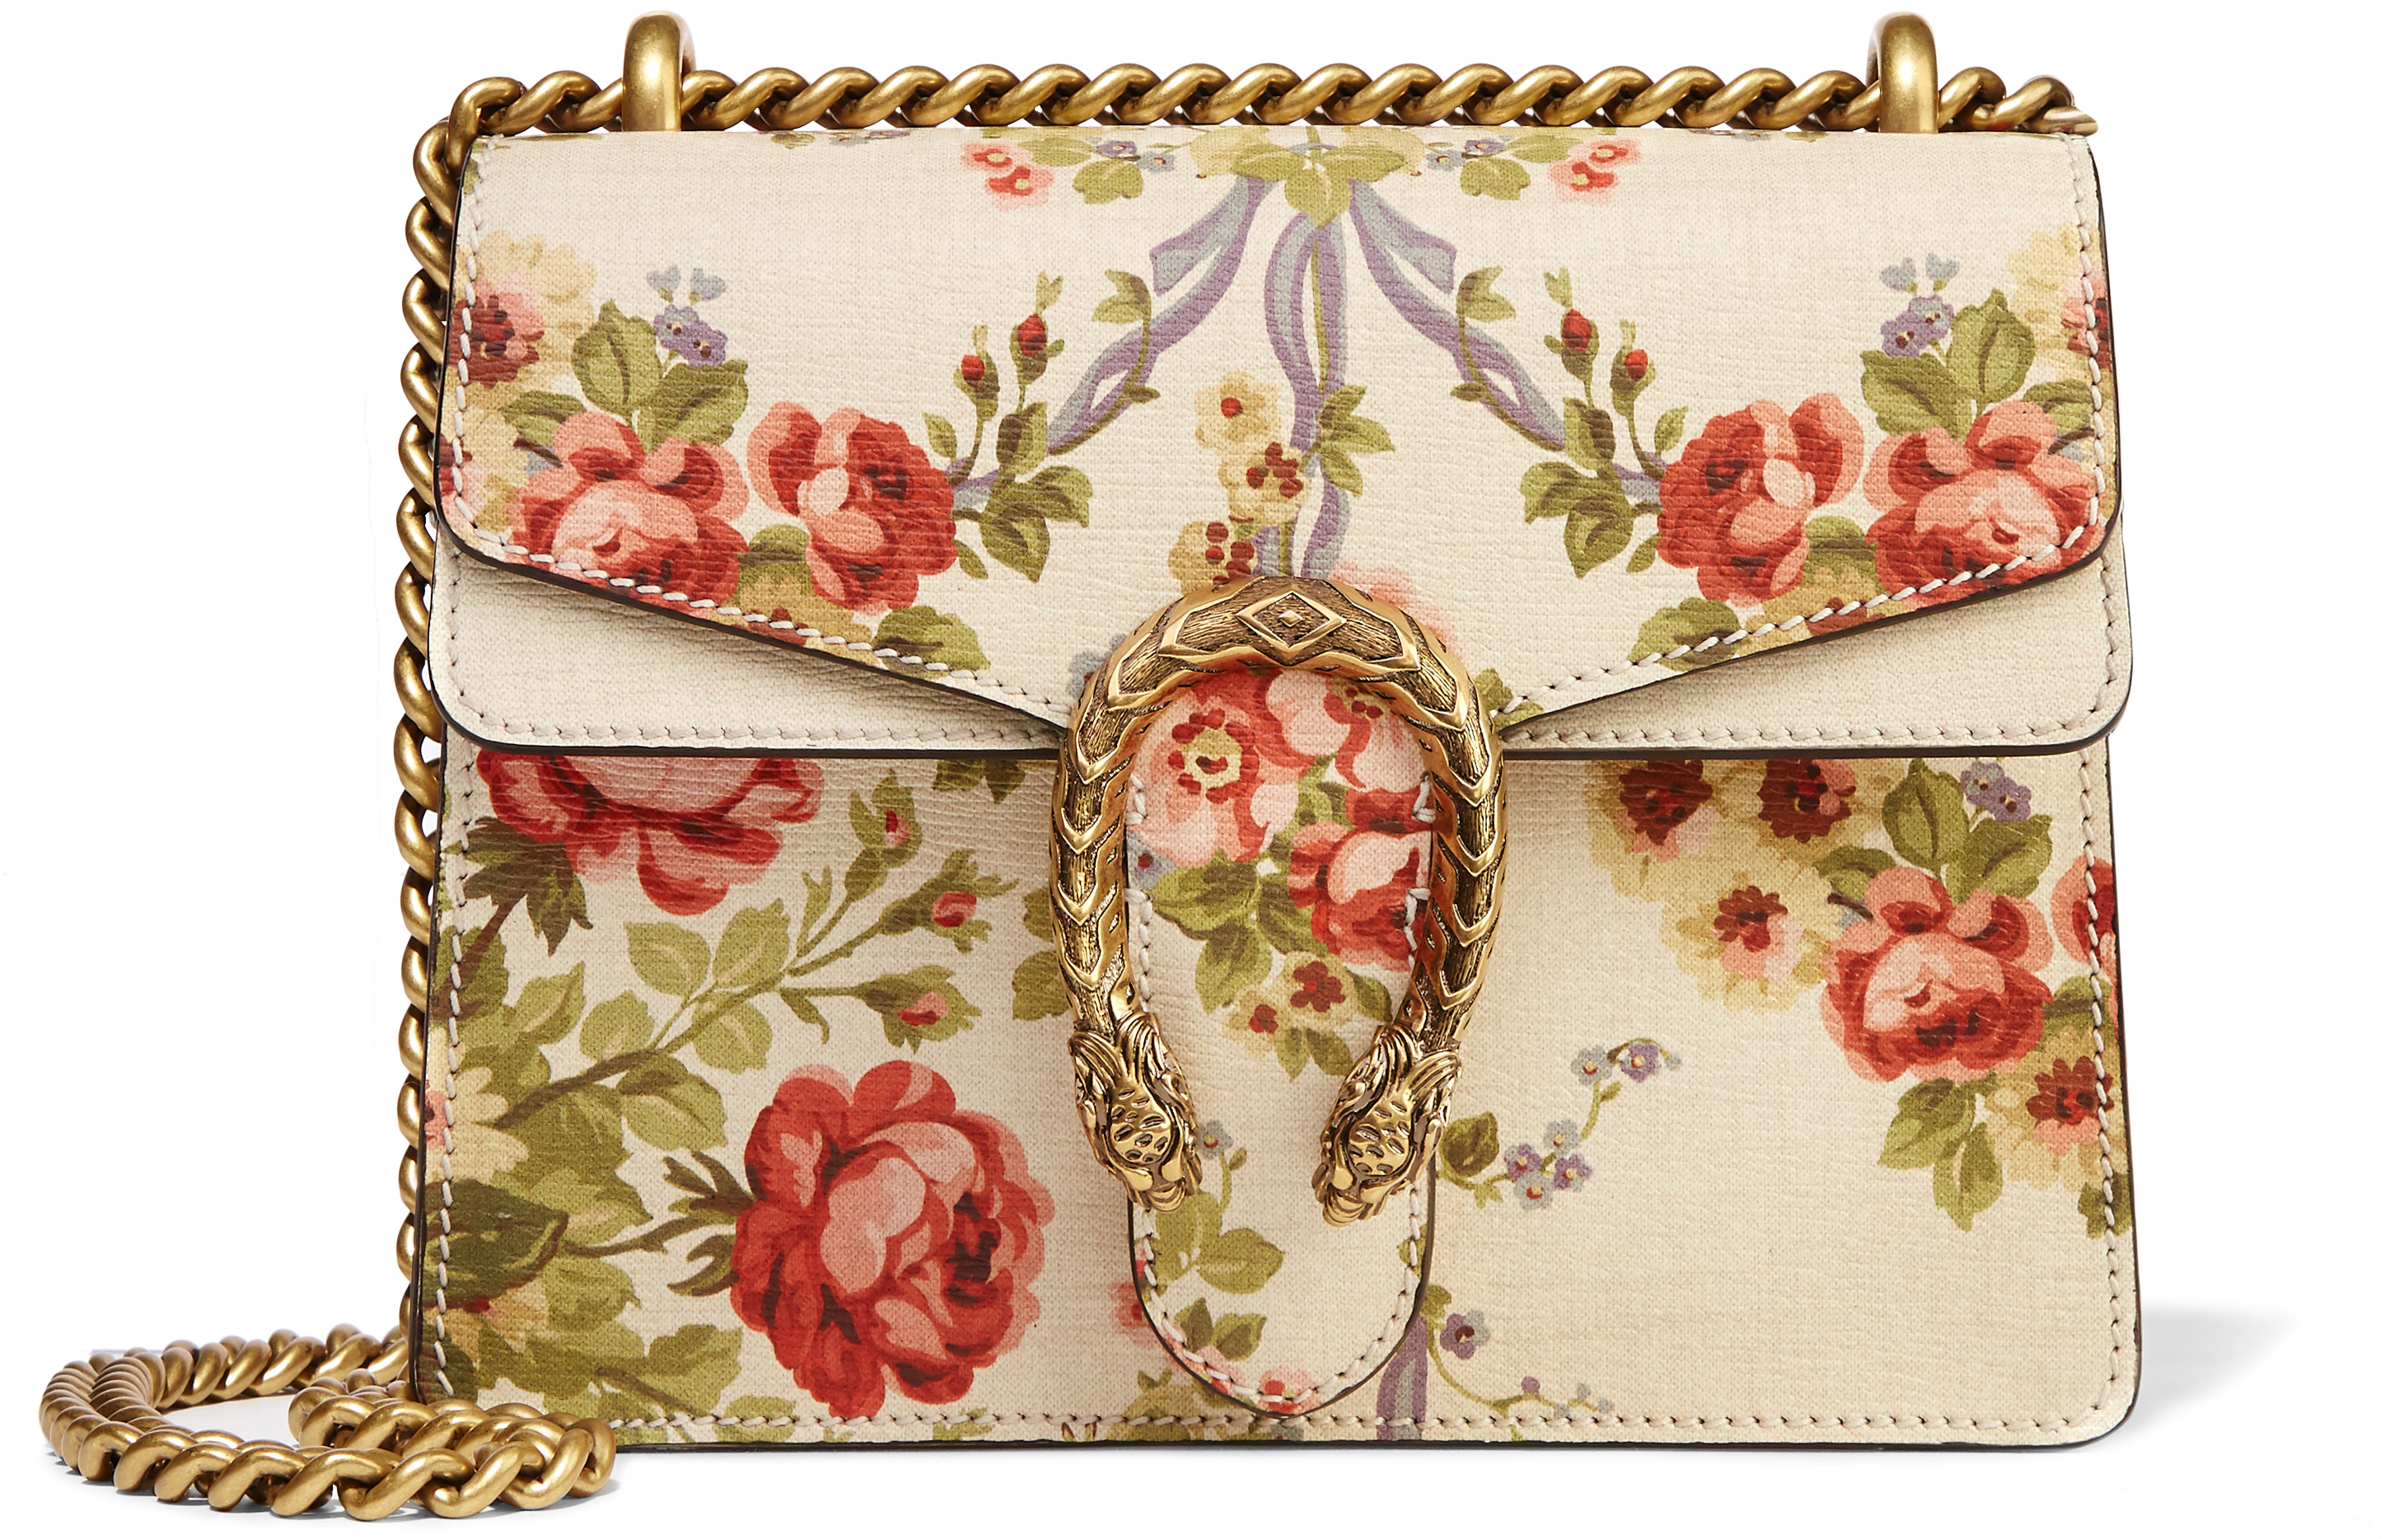 9209024edab The Internet Can t Wait for Gucci s Net-A-Porter Capsule Collection - Racked